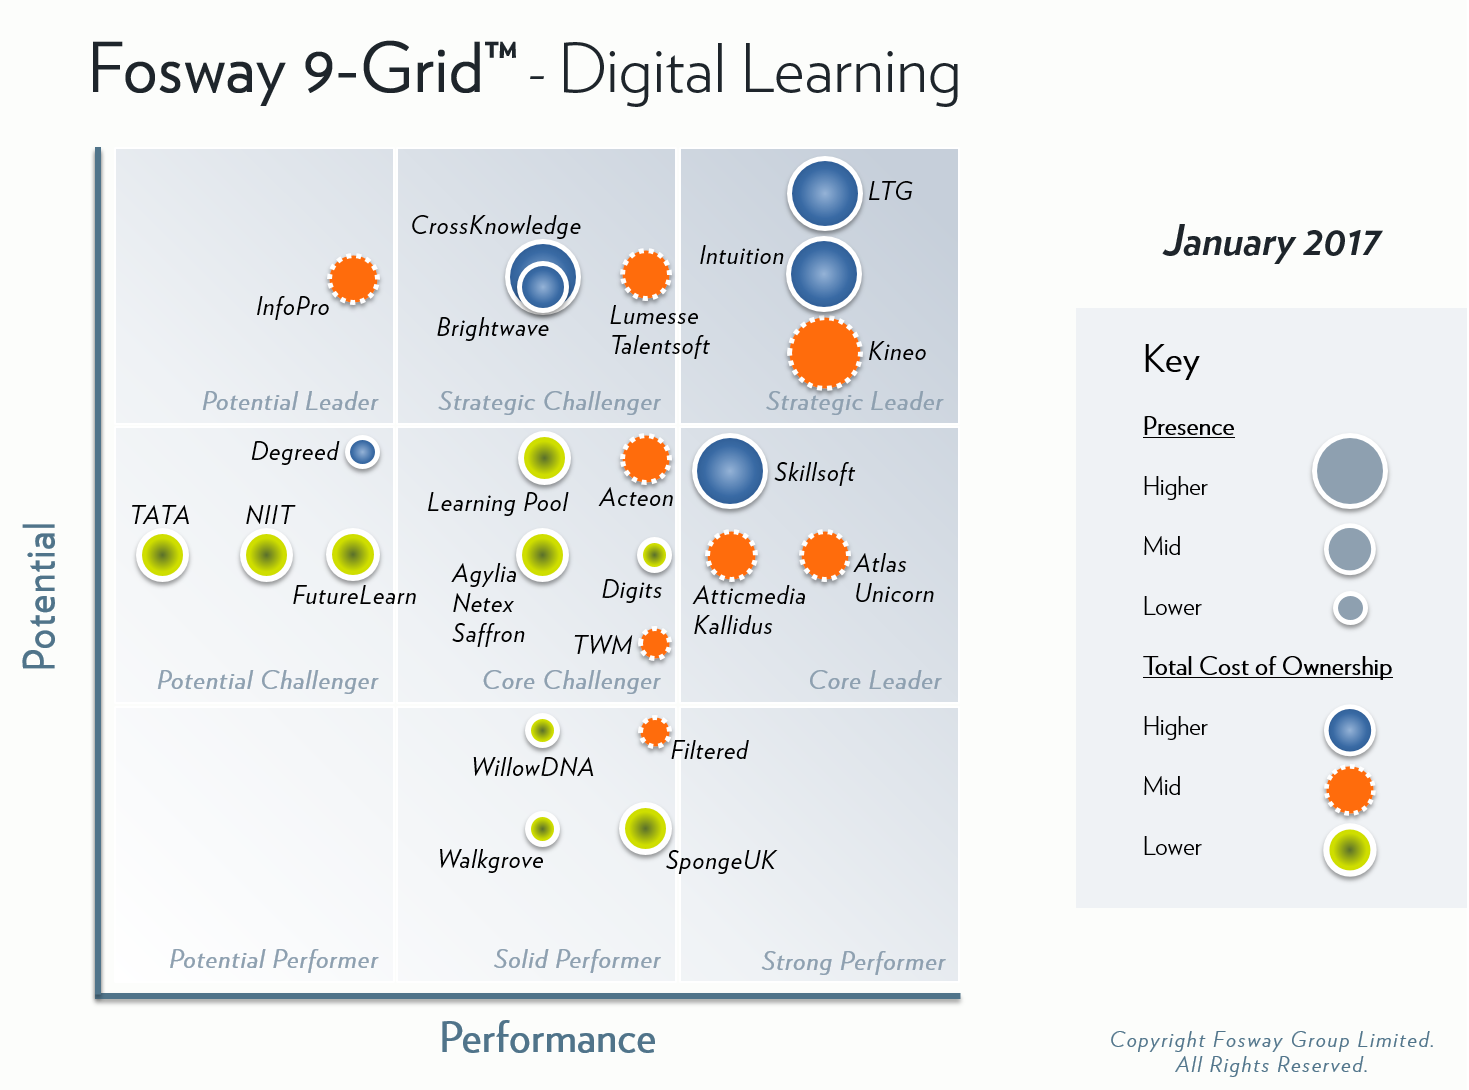 2017 Fosway 9-Grid™ for Digital Learning